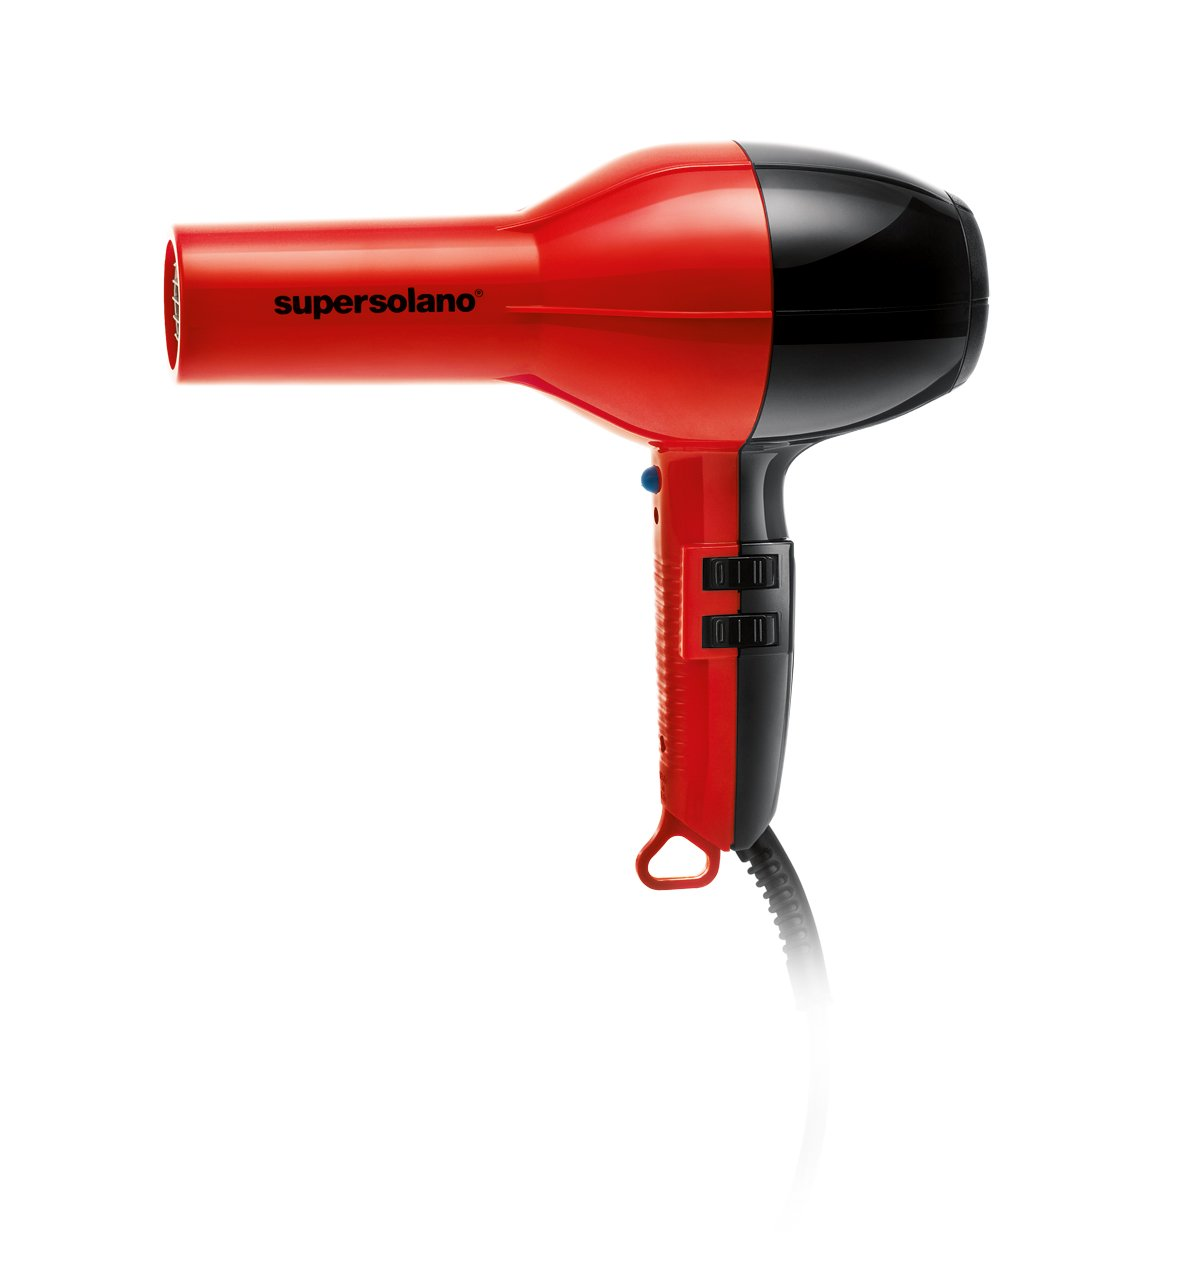 Solano Supersolano Professional Hair Dryer, Red/Black